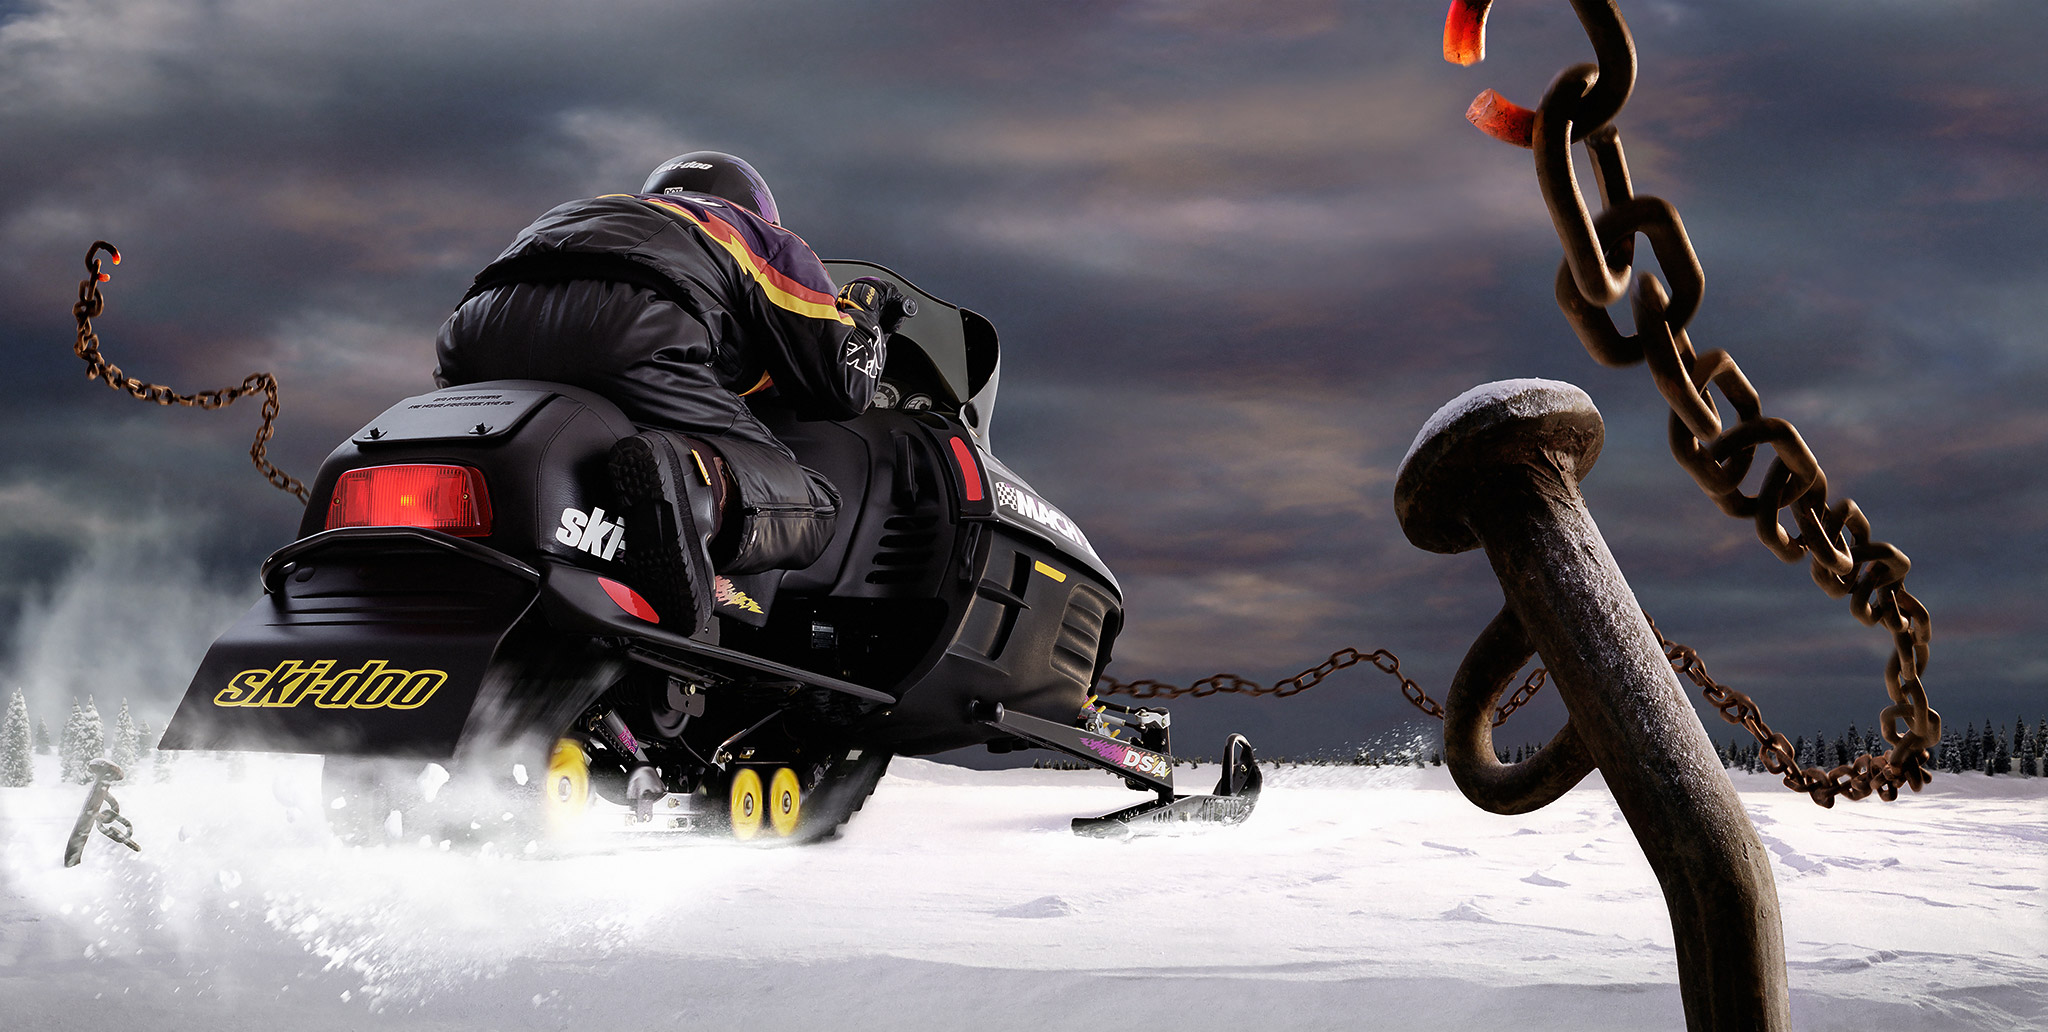 SkiDoo | snowmobile breaking chain |  miniature set | Glen Wexler | Advertising Photographer